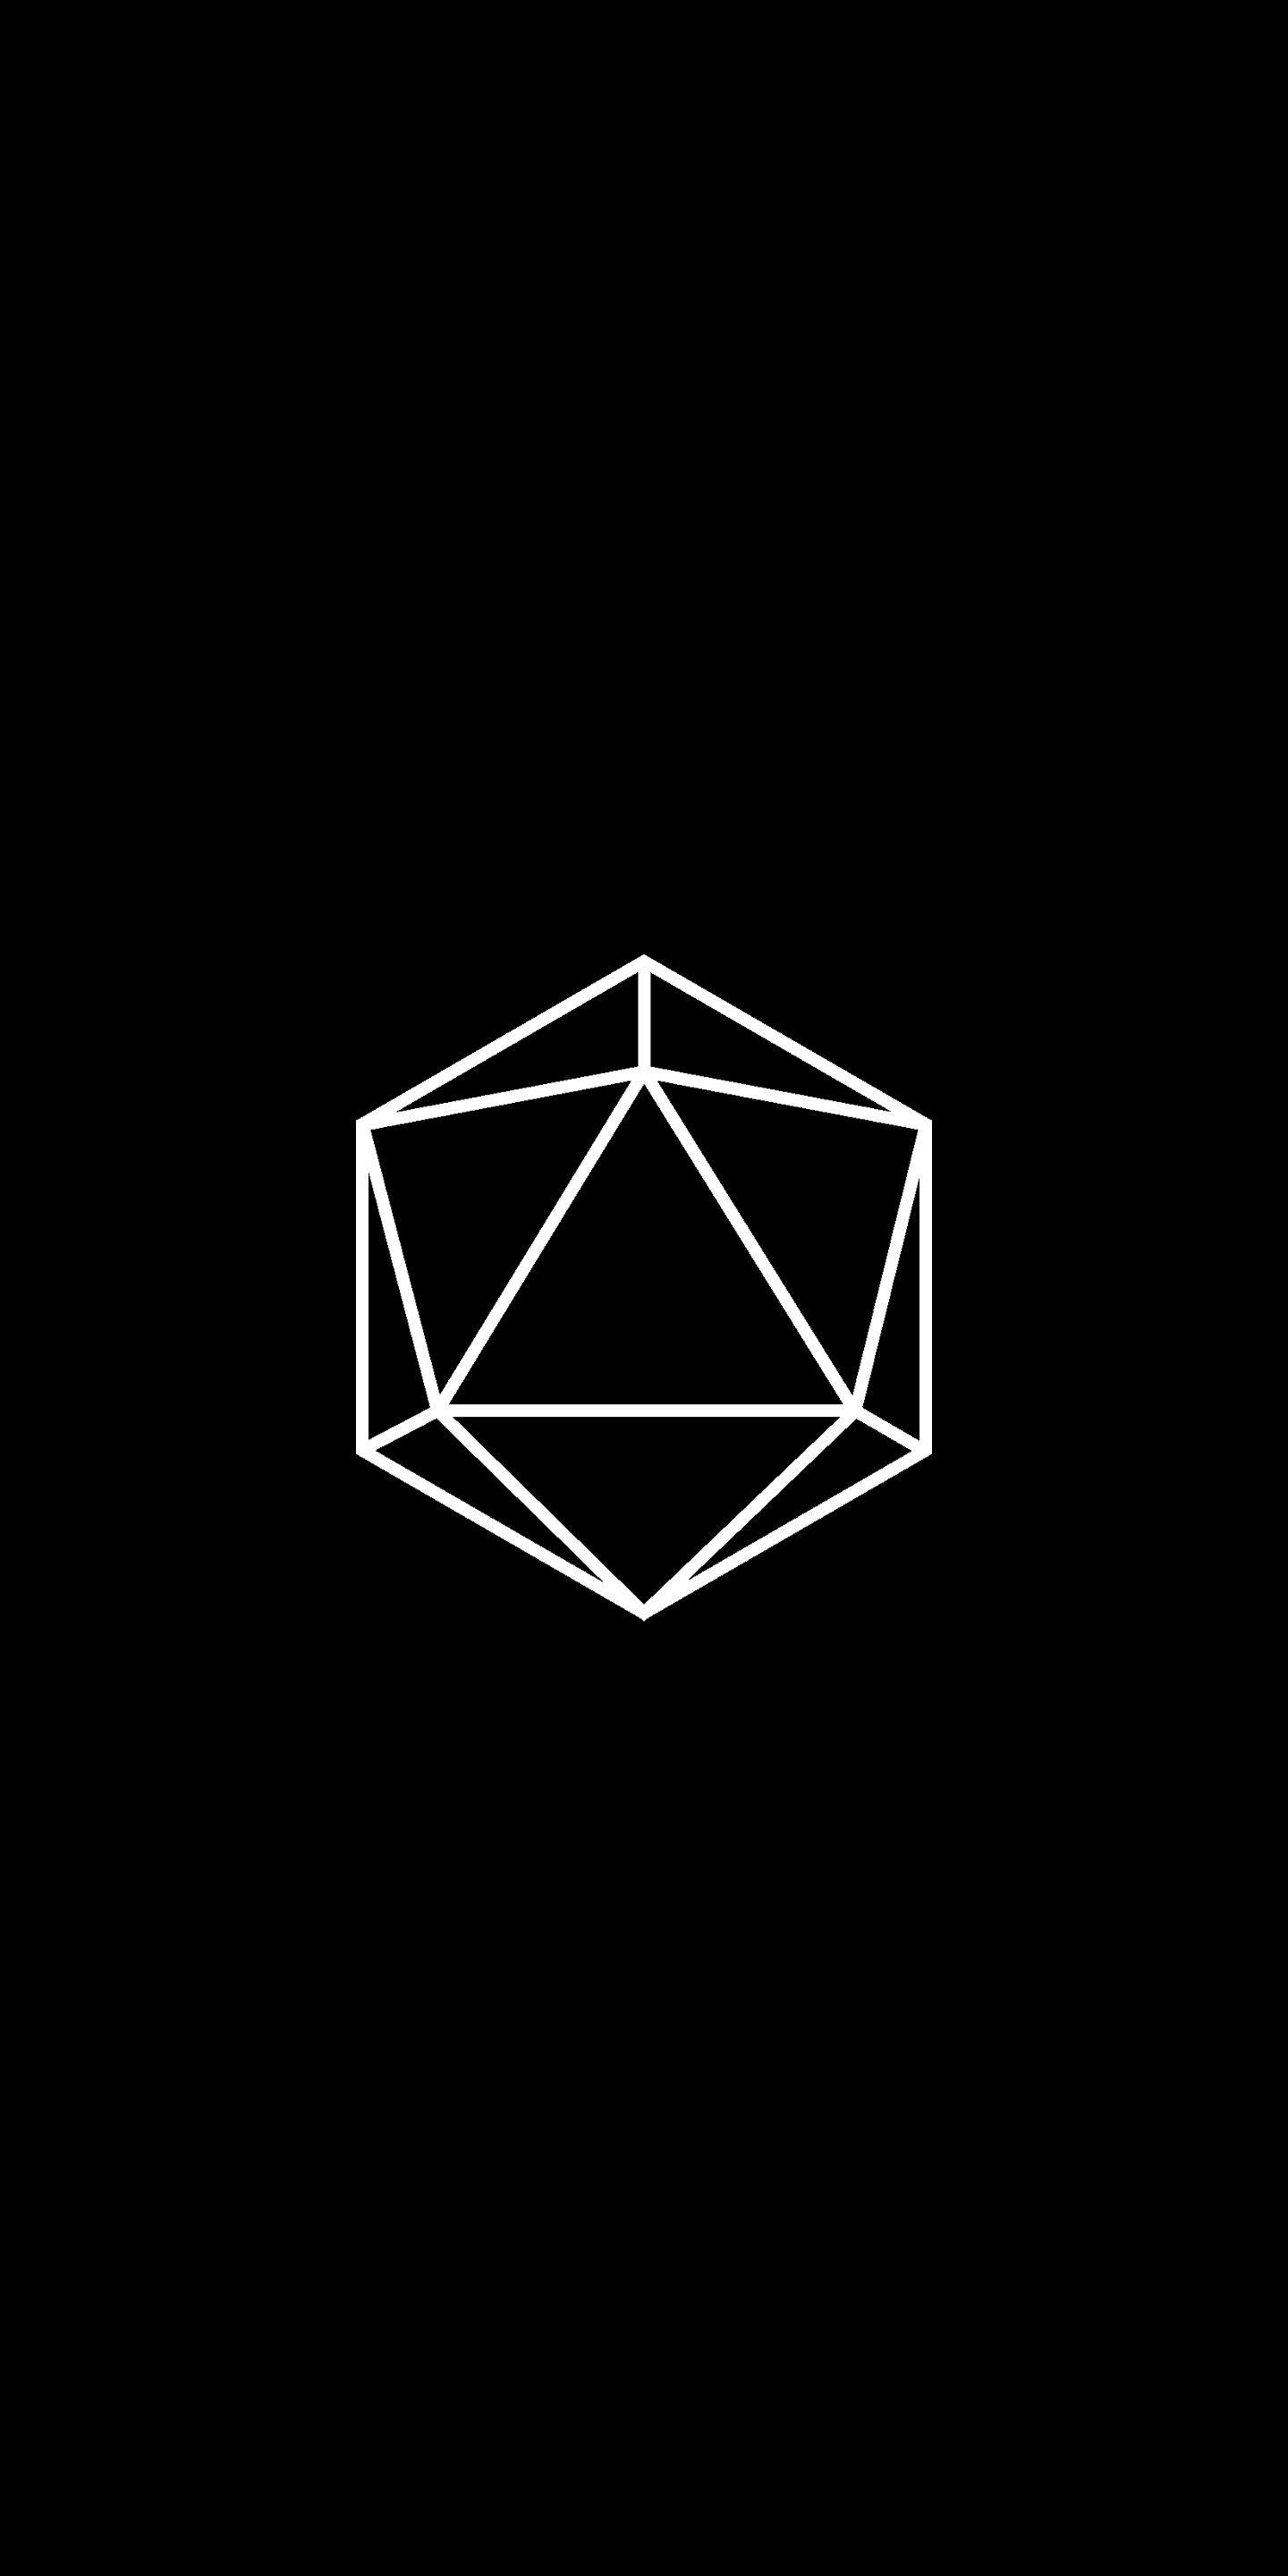 Odesza wallpapers wallpaper cave - 18 by 9 wallpaper ...